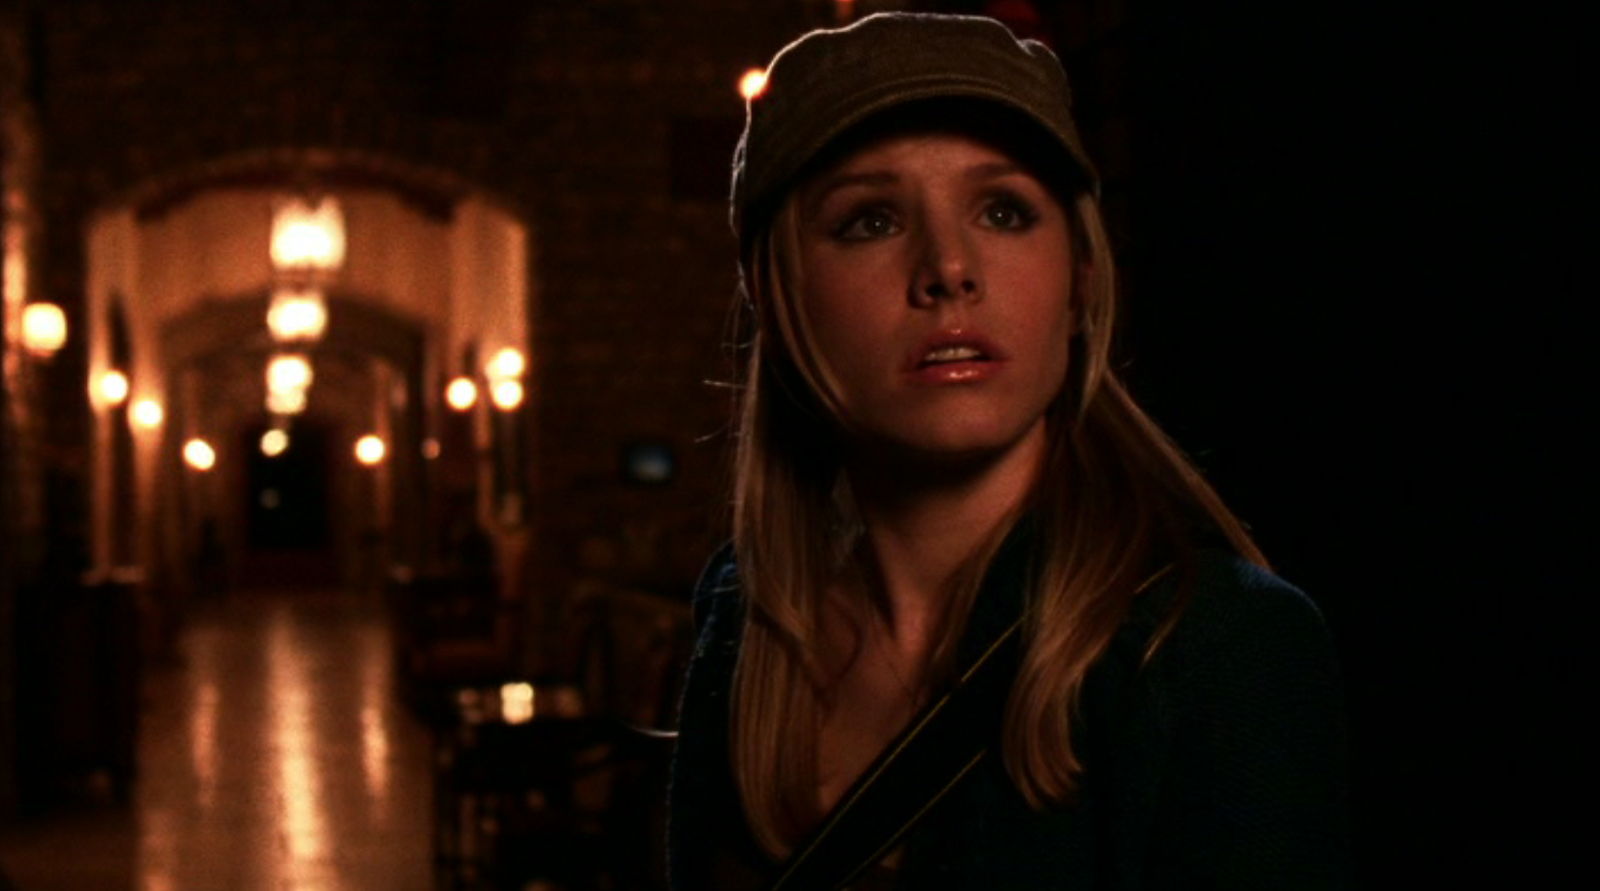 Lost in the Movies (formerly The Dancing Image): Veronica Mars